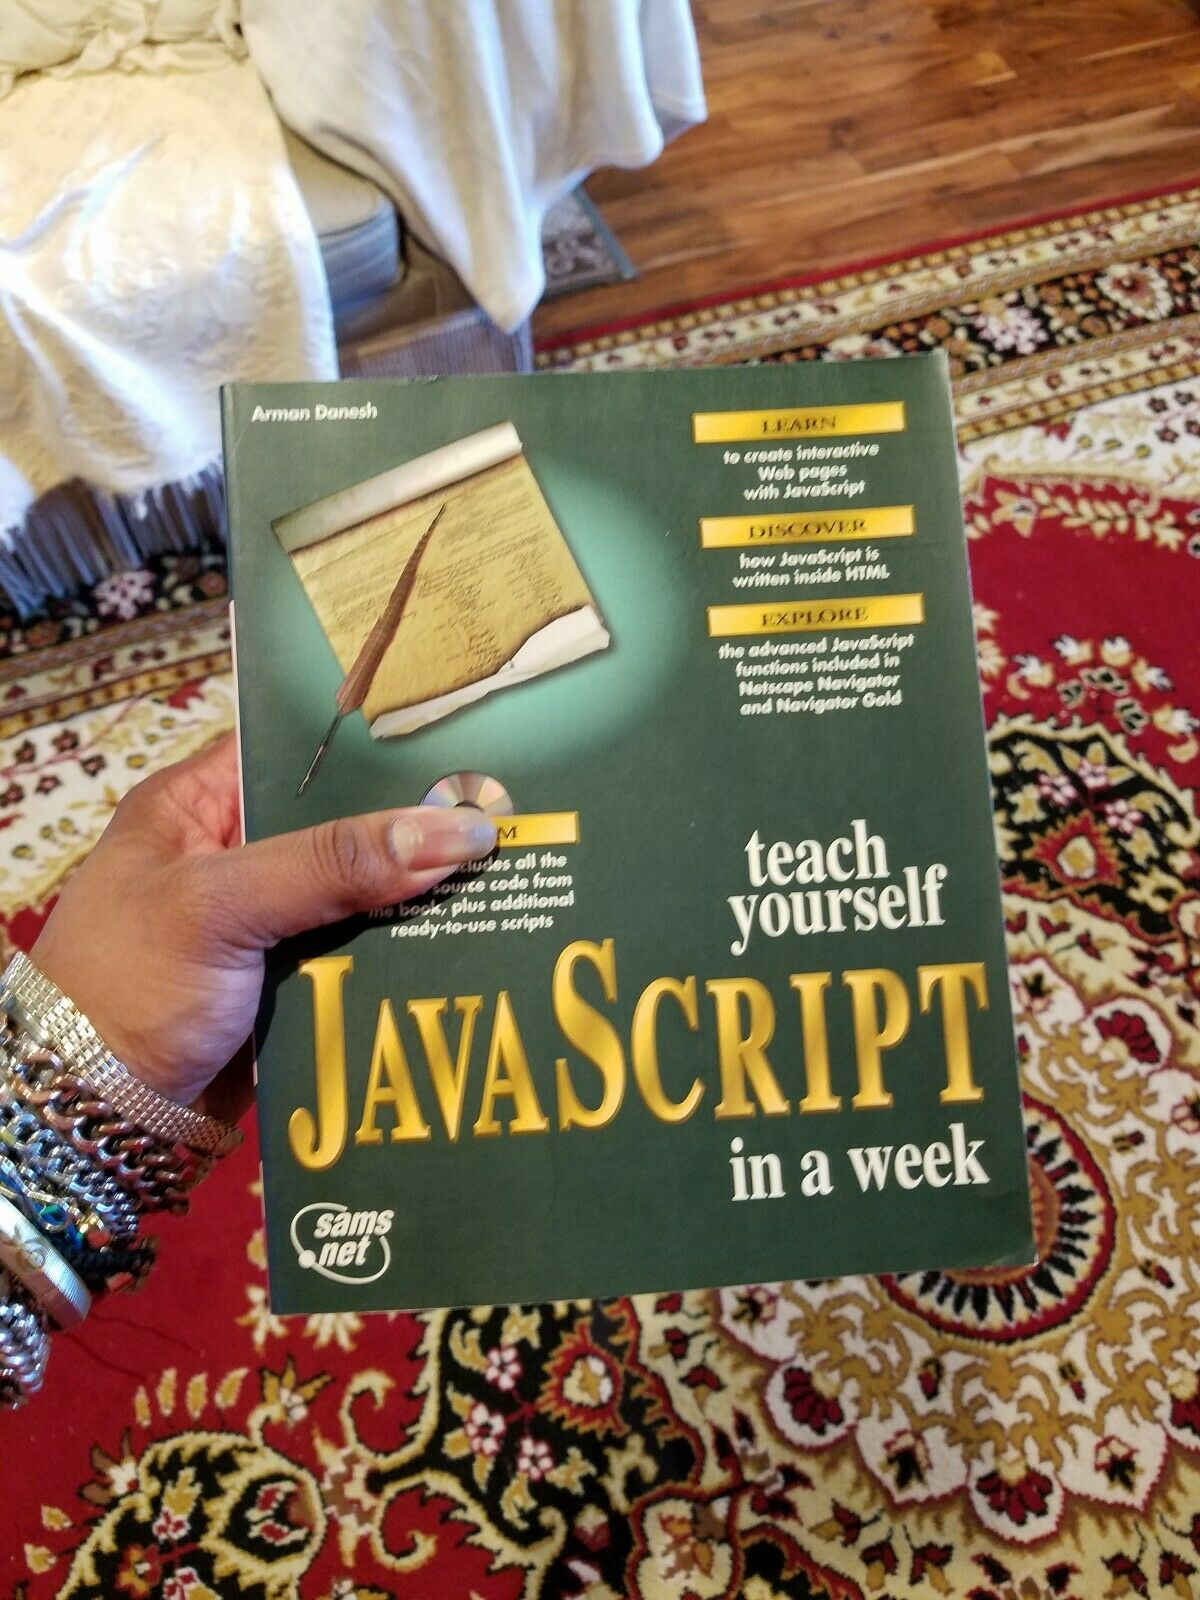 Teach Yourself Java Script In A Week By Arman Danesh |